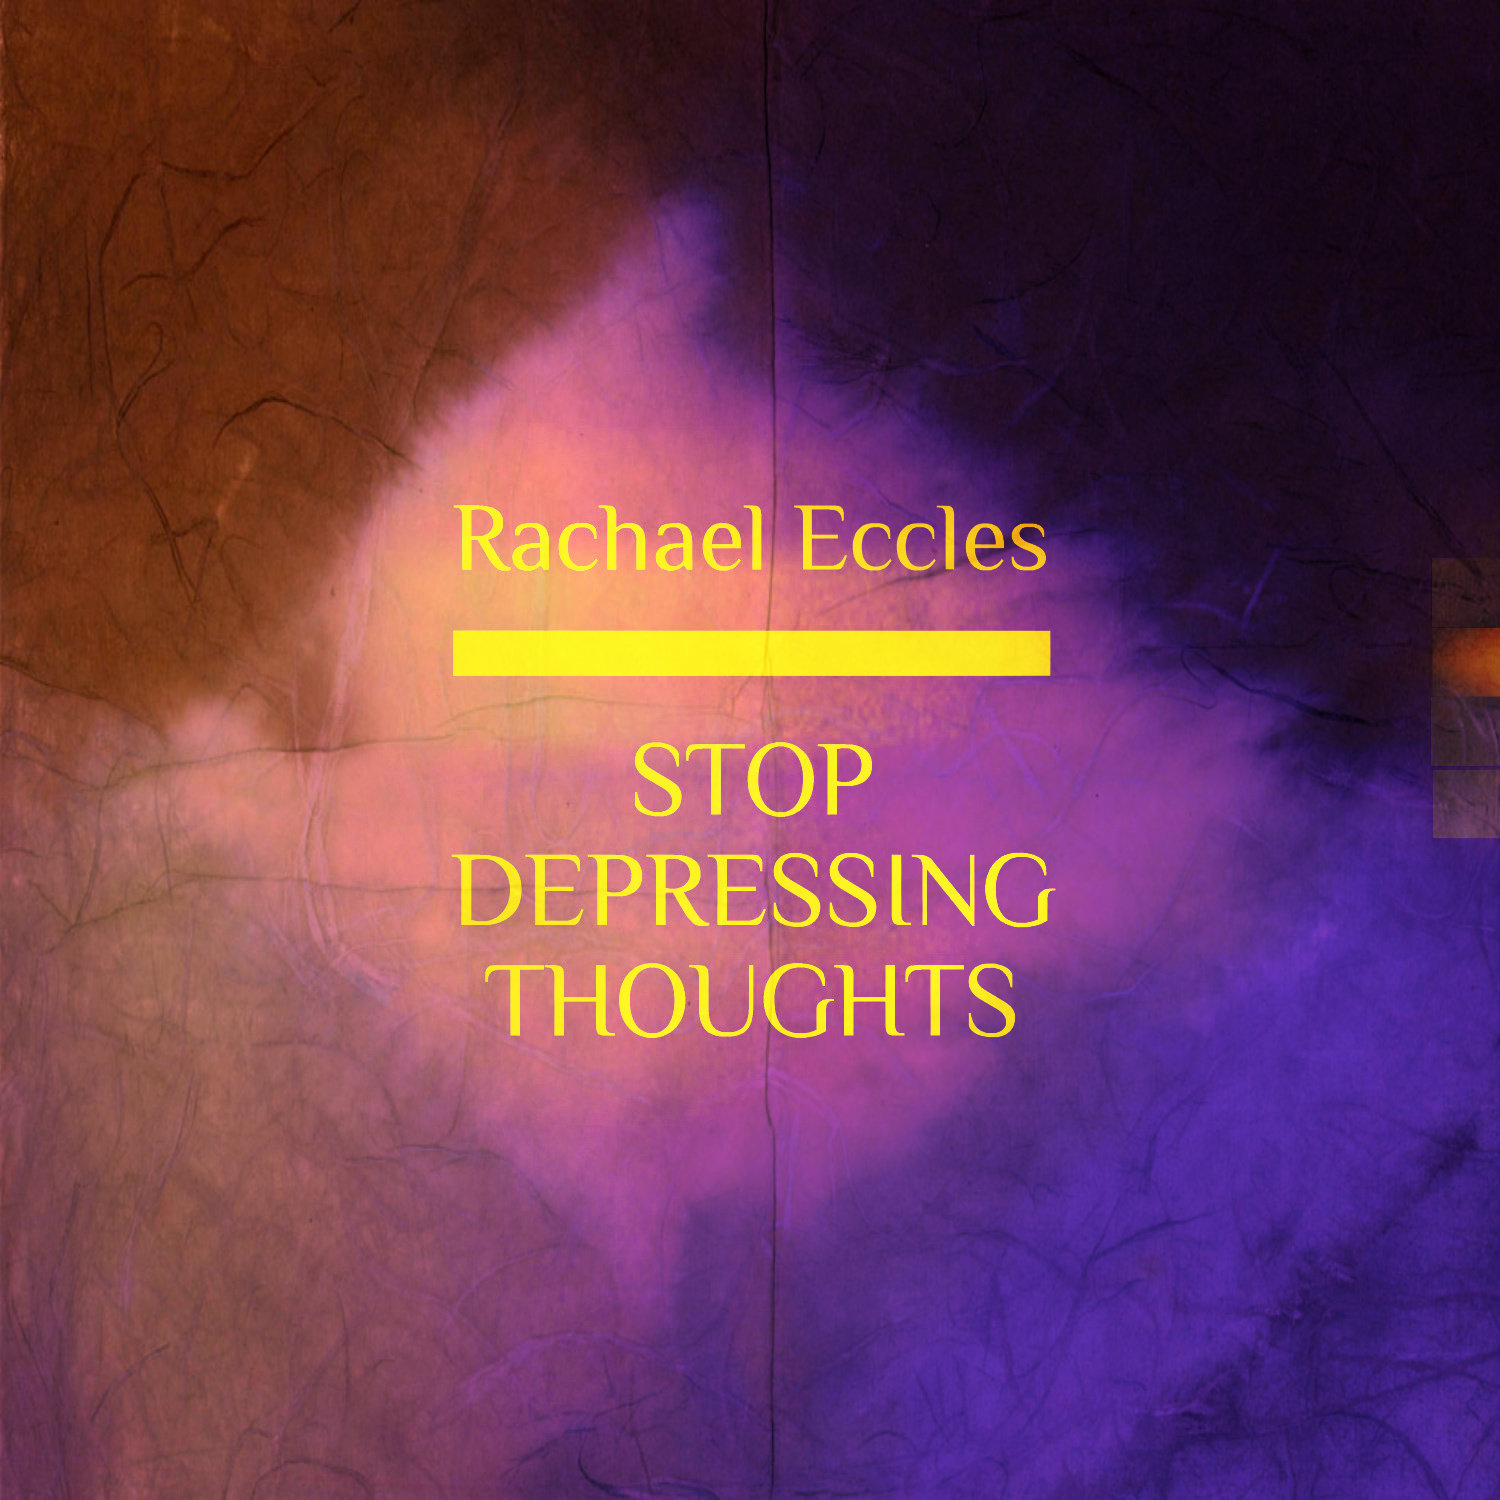 Stop Depressing Thoughts, Stop Negative Depressing Thinking Hypnotherapy, Self Hypnosis Download or CD